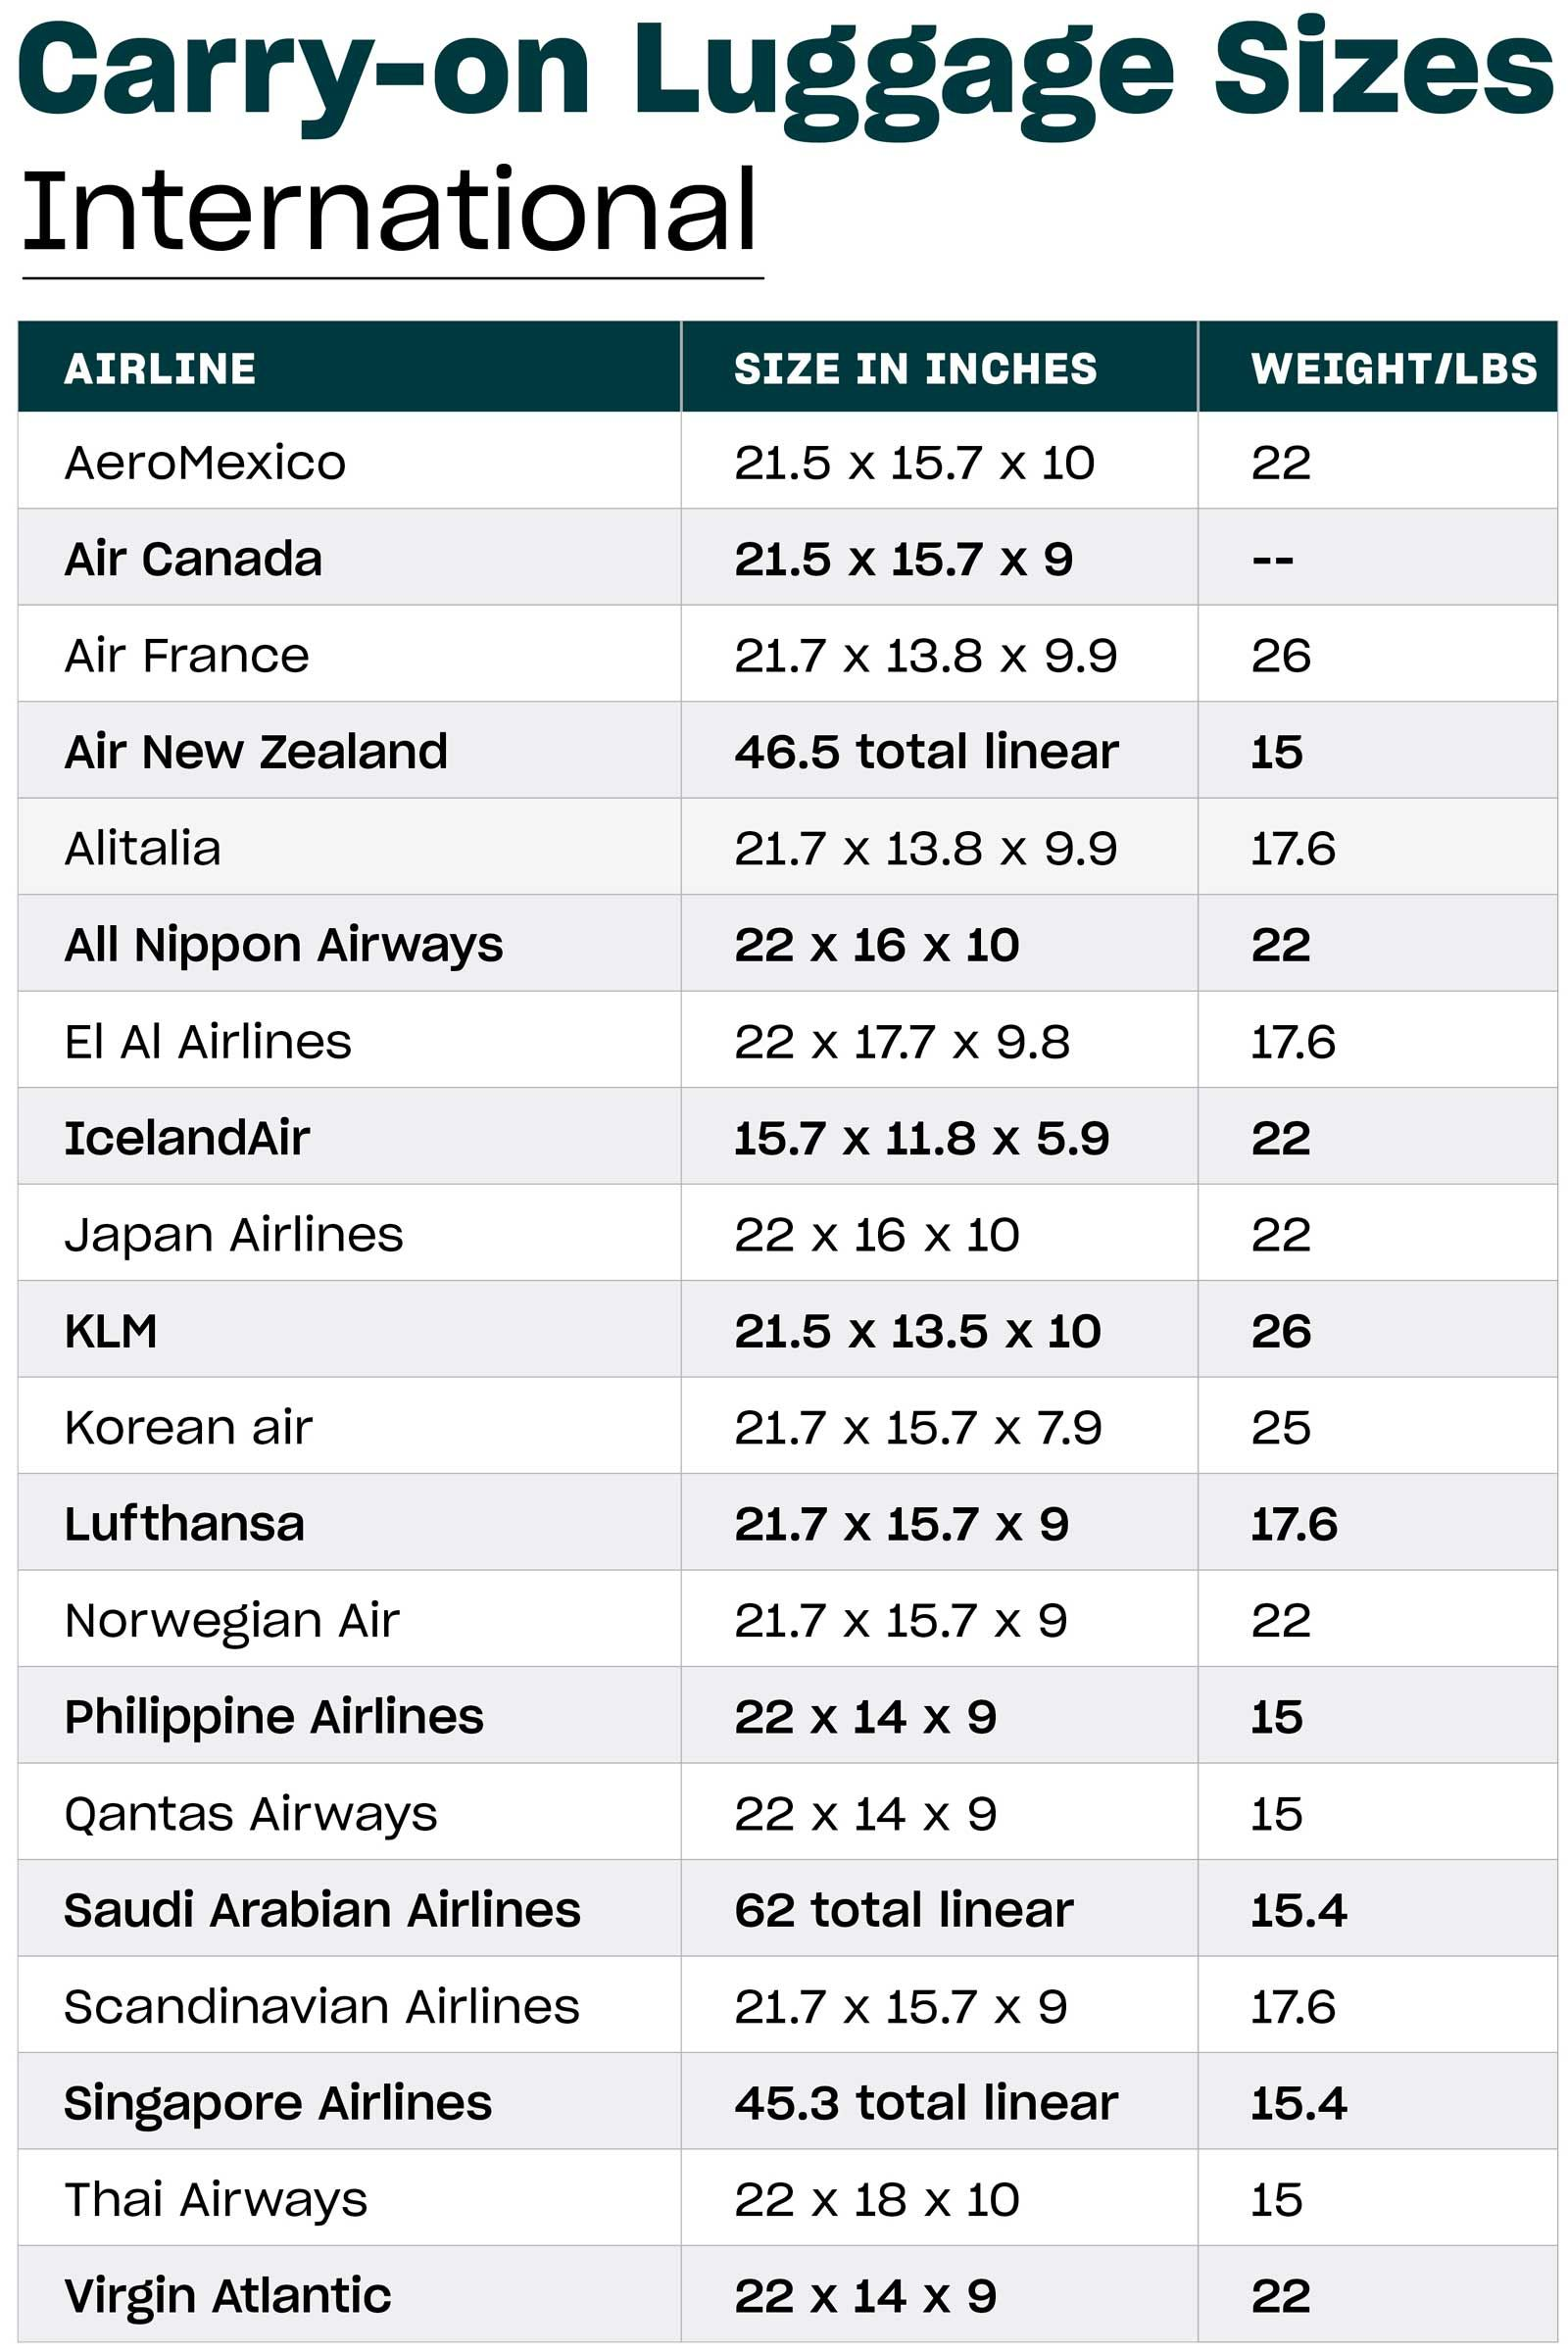 A Carry On Luggage Size Guide By Airline Carry On Luggage Luggage Sizes International Carry On Luggage